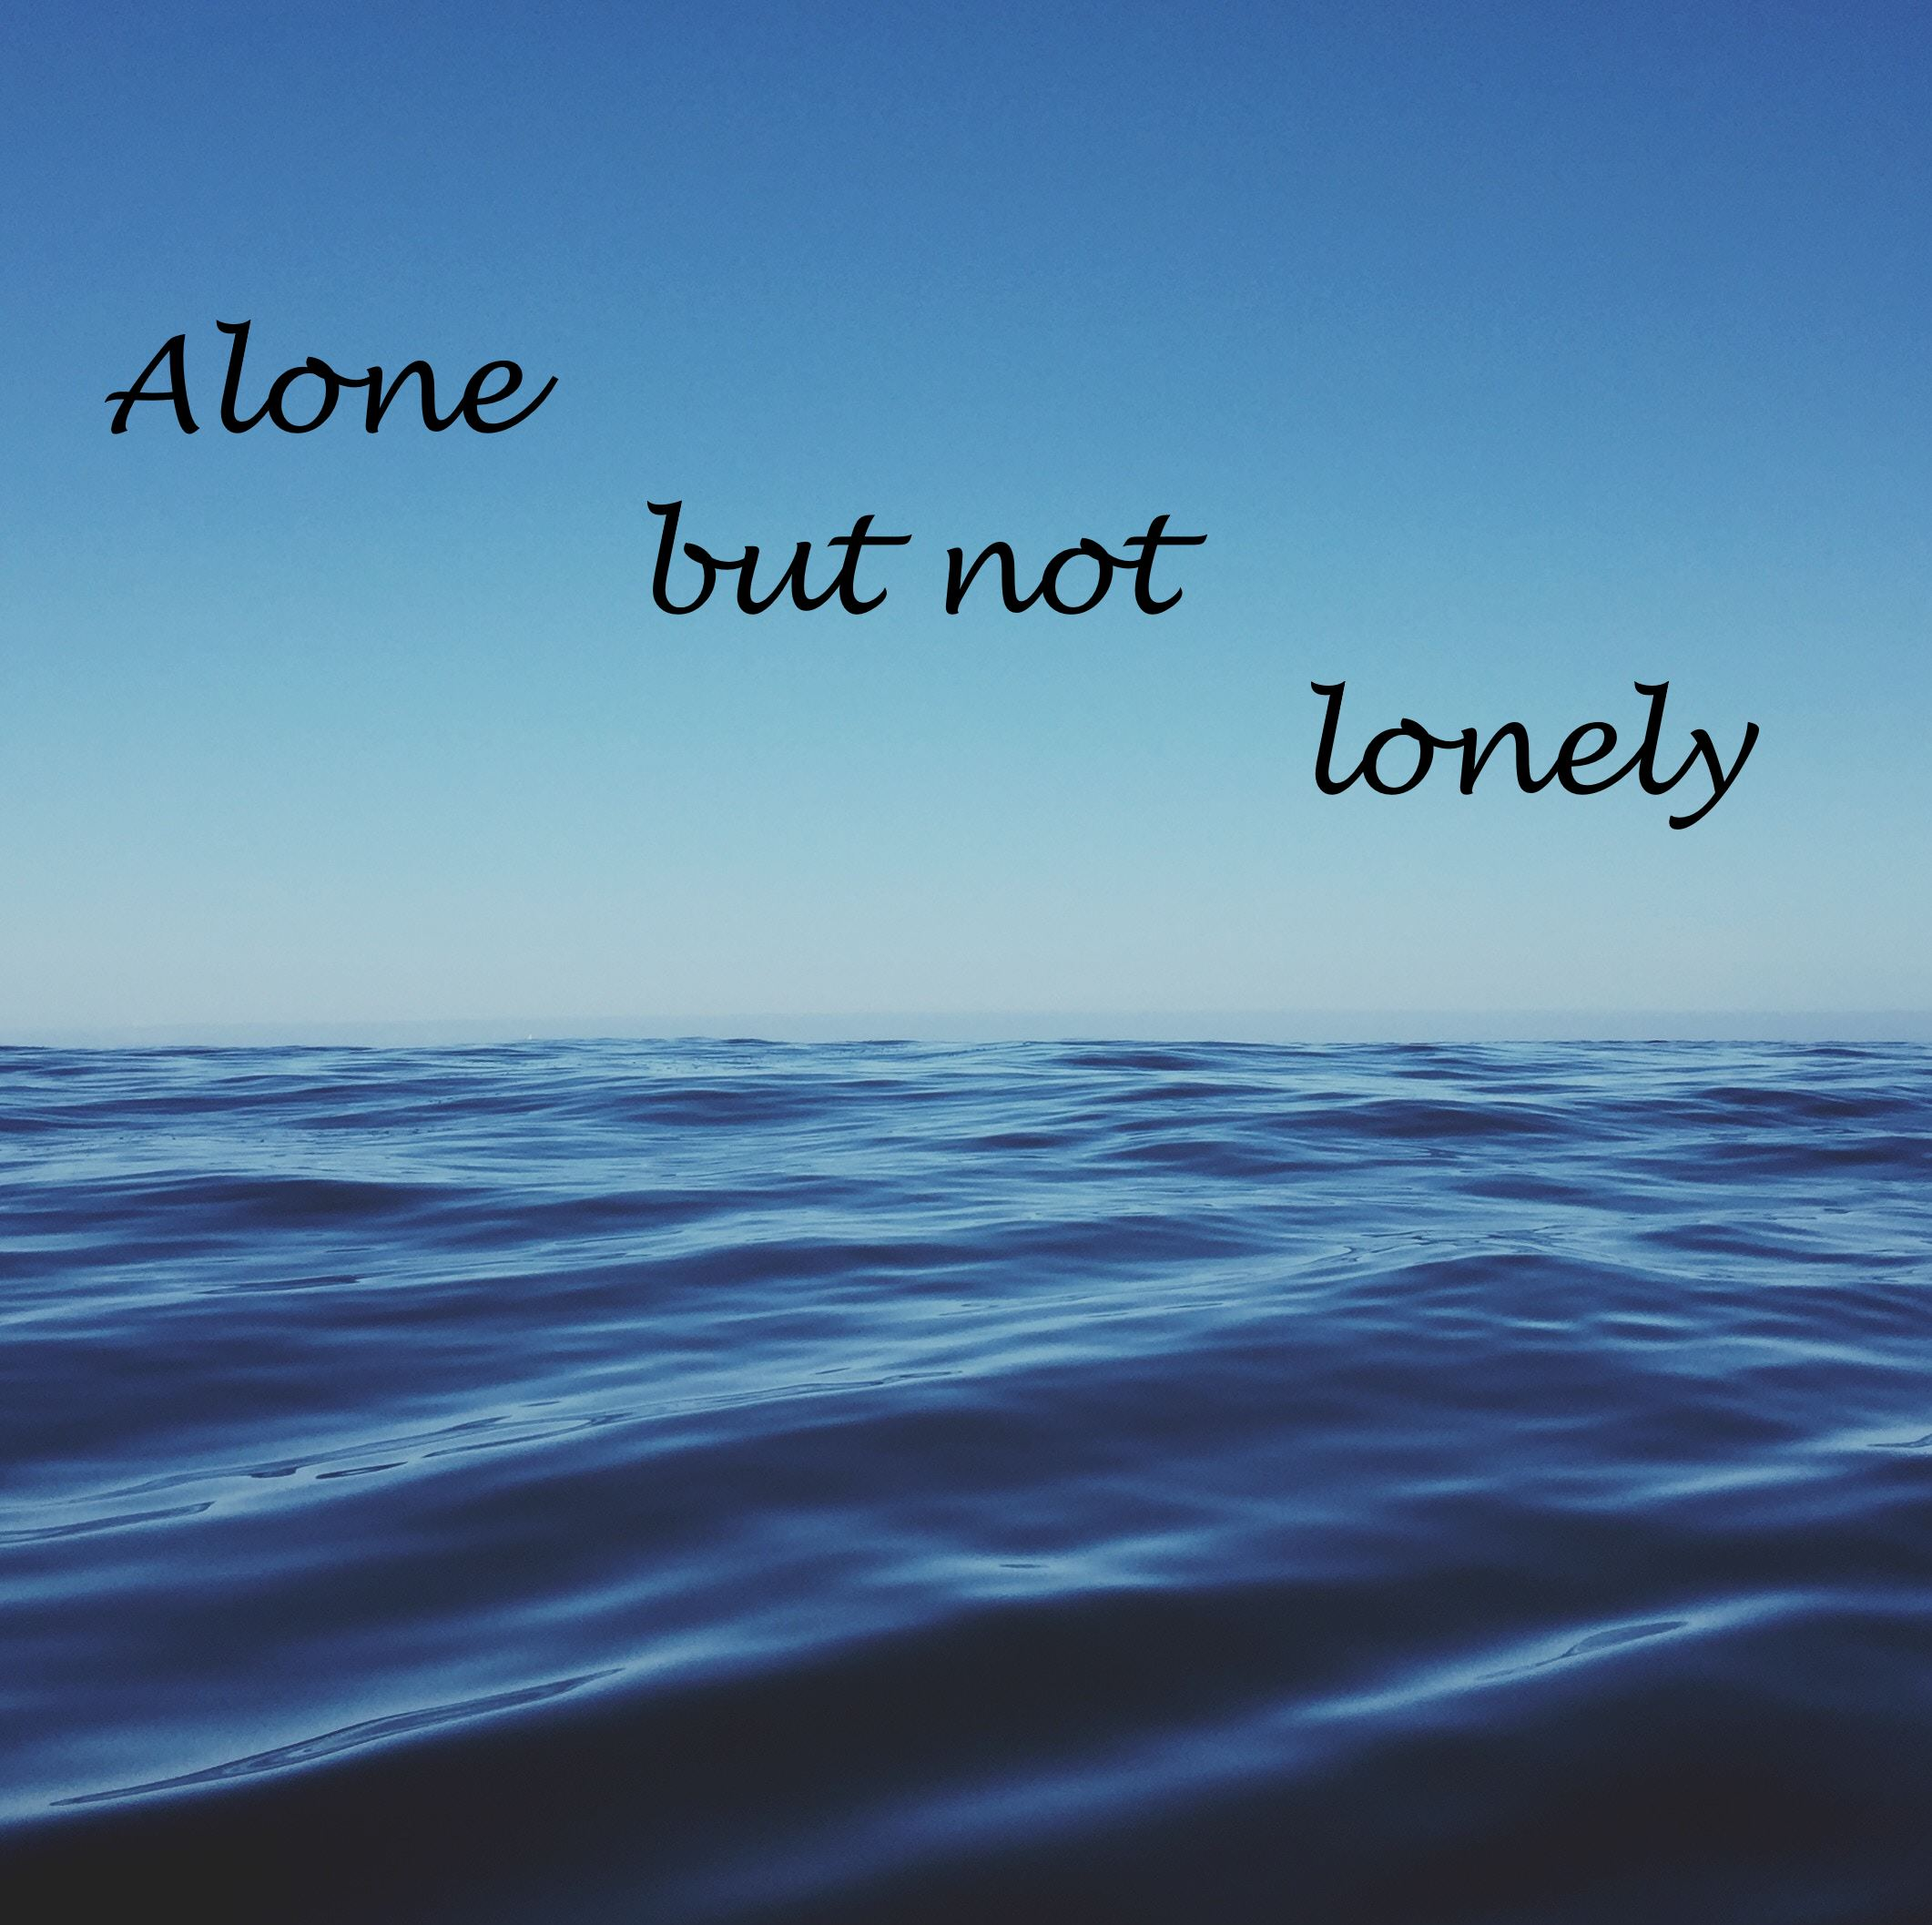 Populair Alone but not lonely. – Caroline Ootes Bewustzijnscoaching &GI75